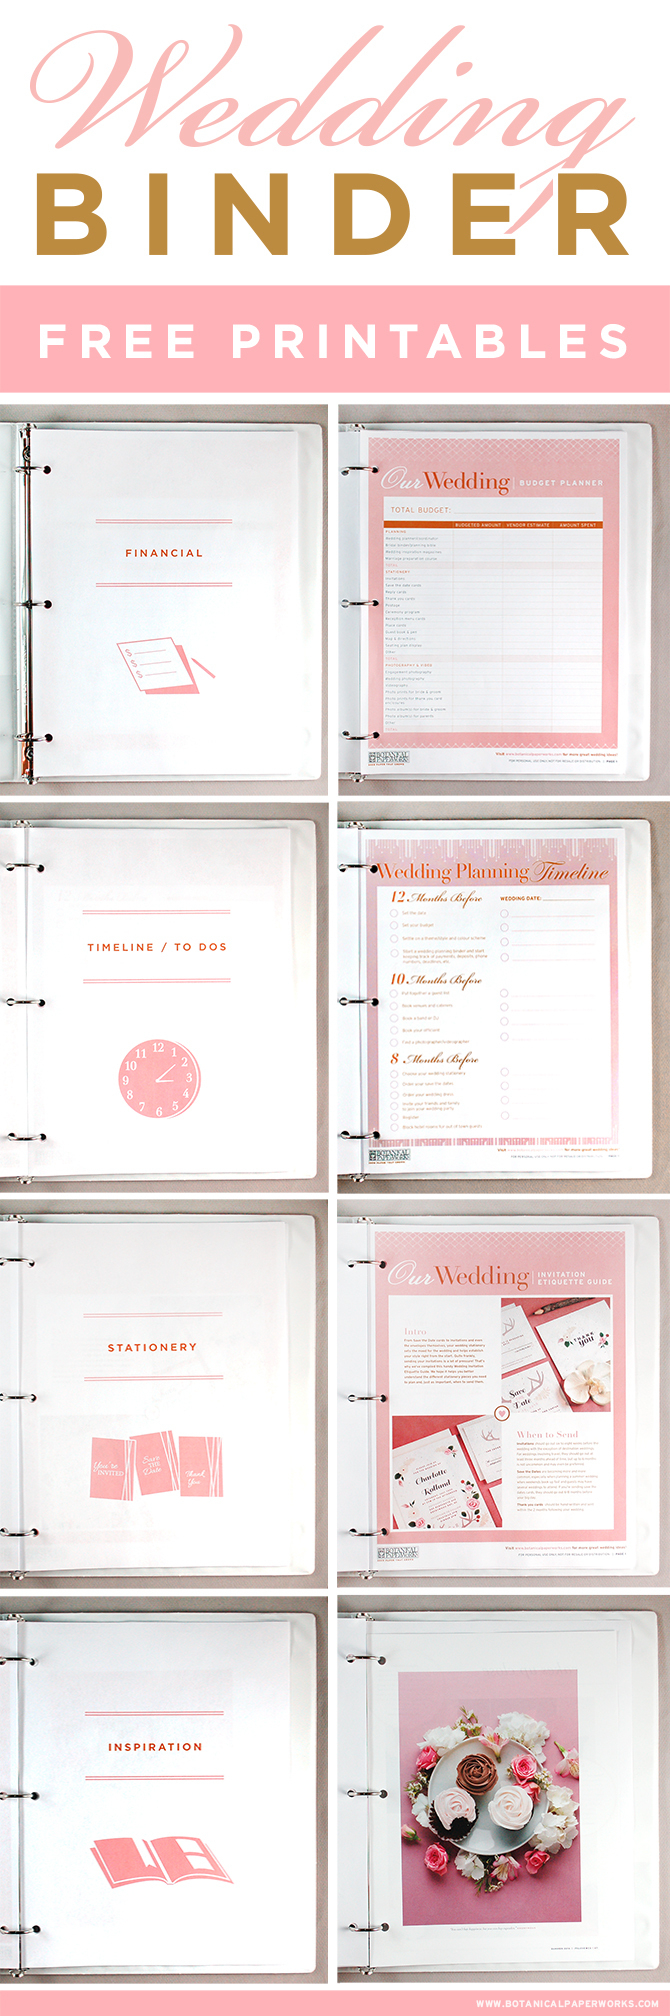 12 Ideas Wedding Planner Book Pdf On A Budget – Wedding Ideas - Free Printable Wedding Planner Book Pdf